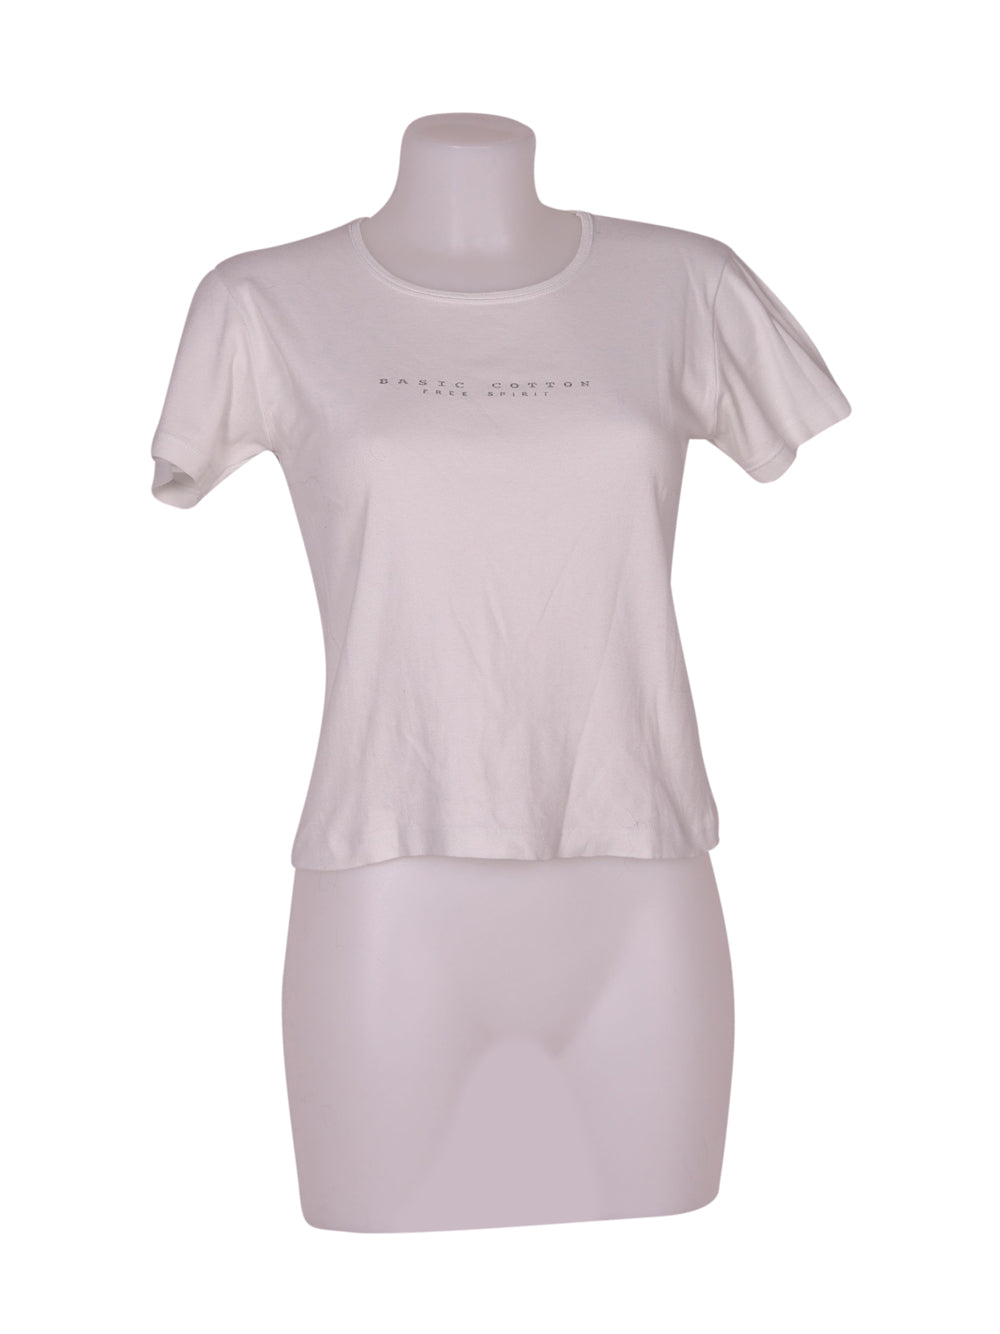 Front photo of Preloved free spirit White Woman's t-shirt - size 10/M